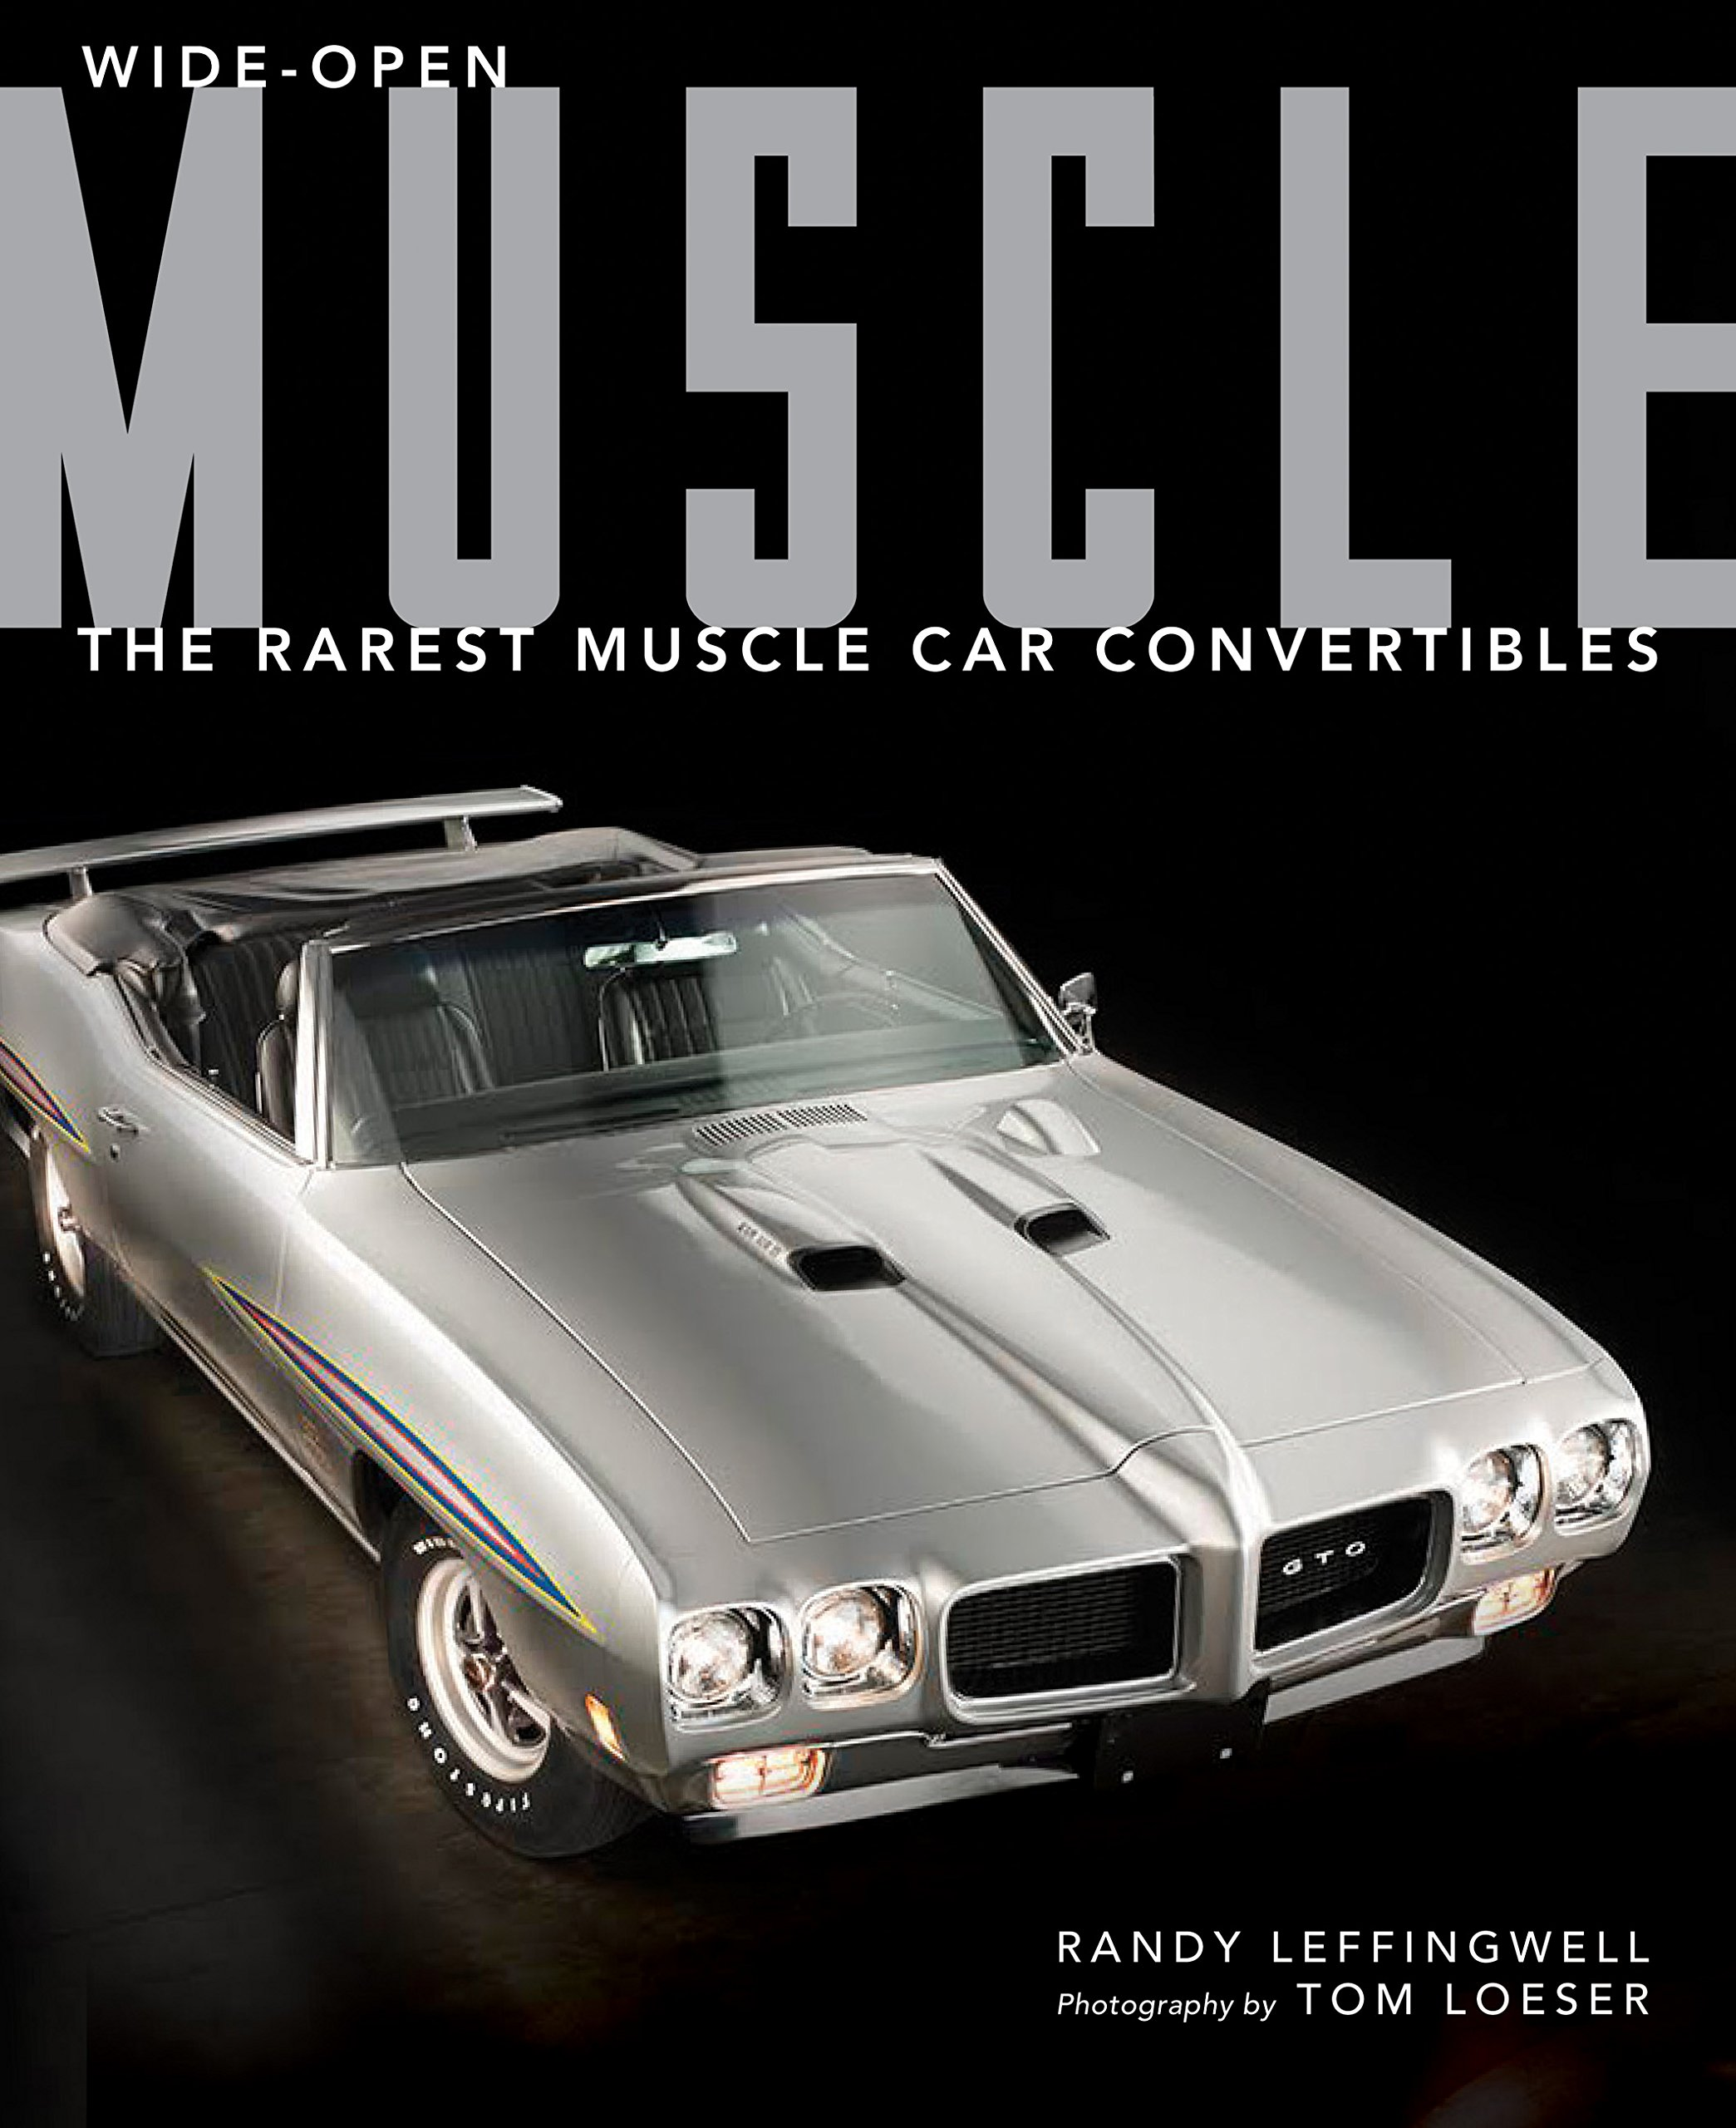 Wide Open Muscle The Rarest Muscle Car Convertibles Randy